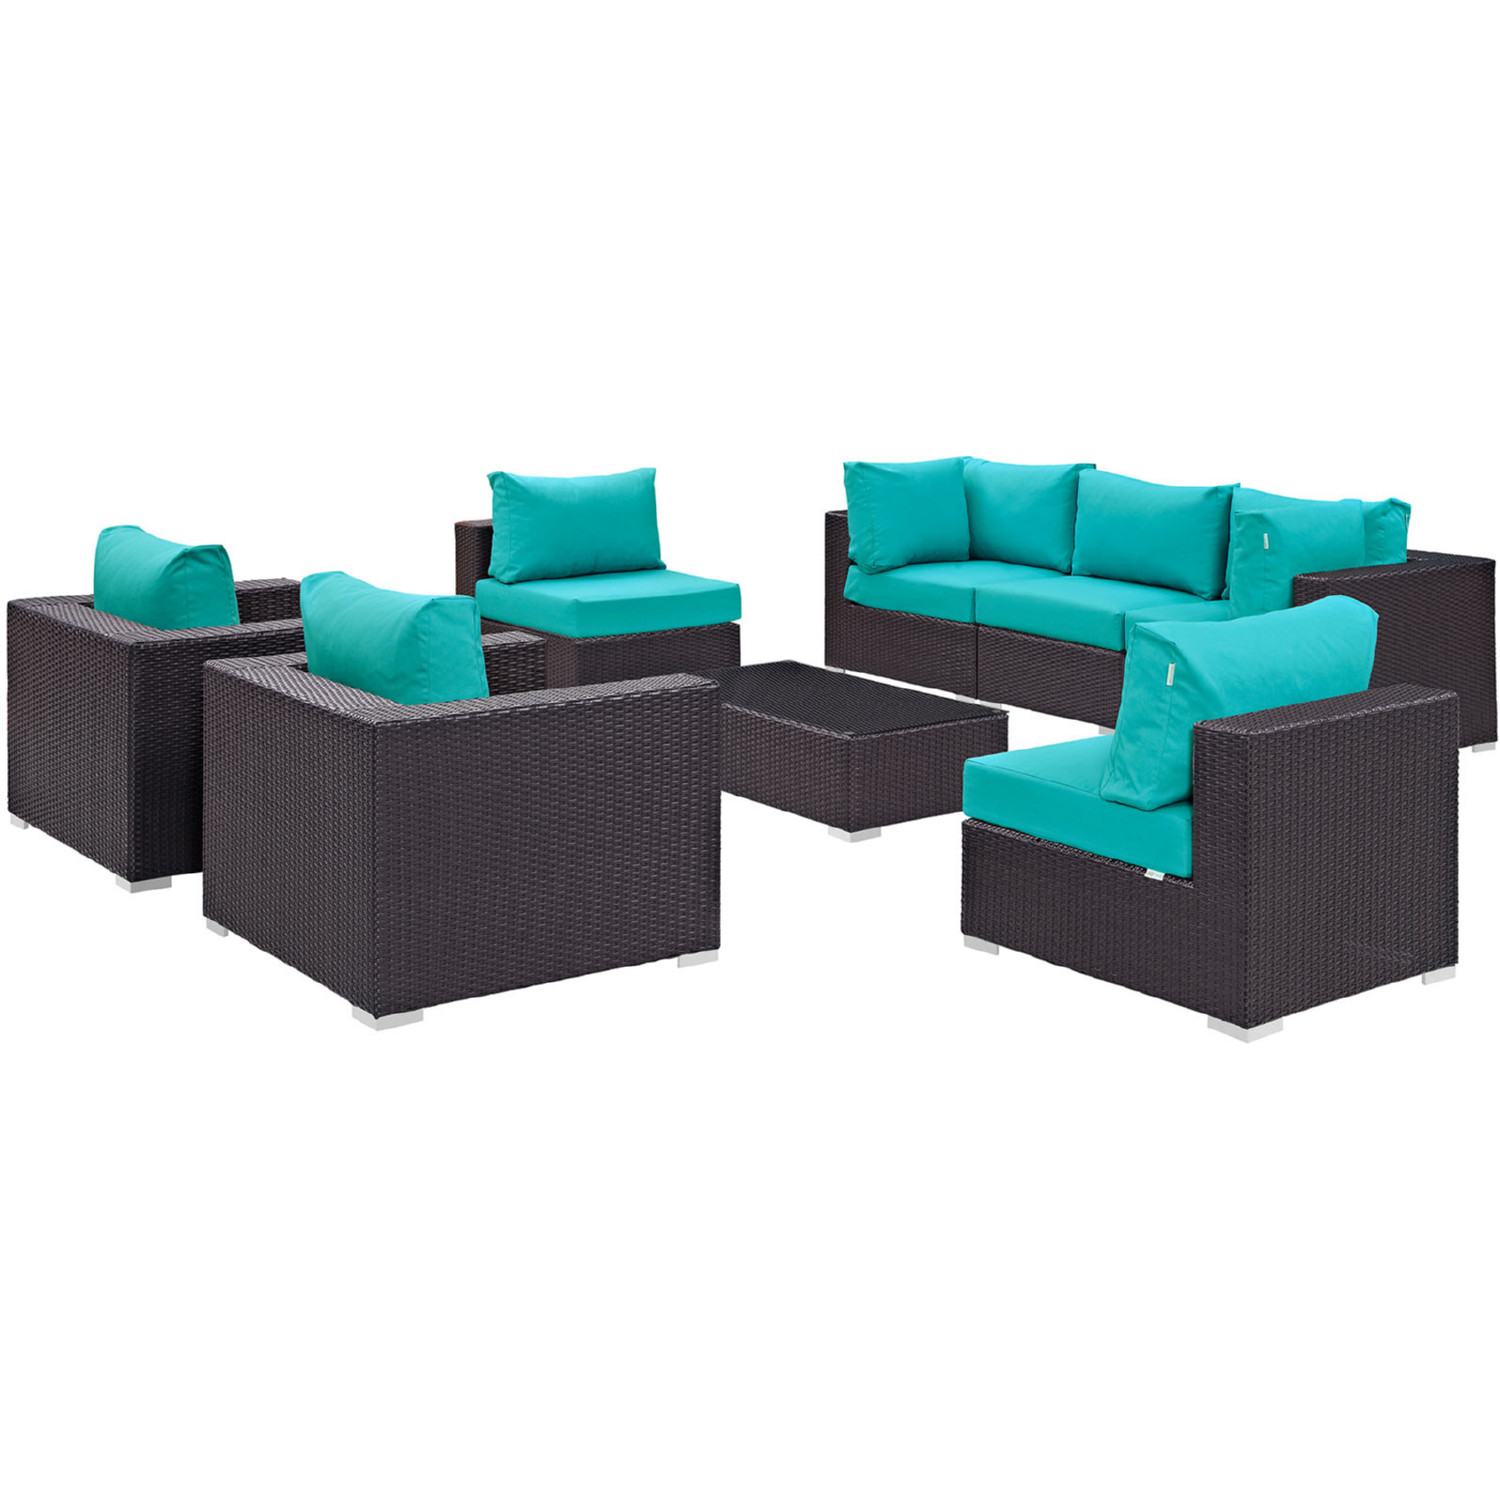 Modway EEI 2203 EXP TRQ SET on Outdoor Patio Sectional Set Espresso Turquoise By Modway Furniture